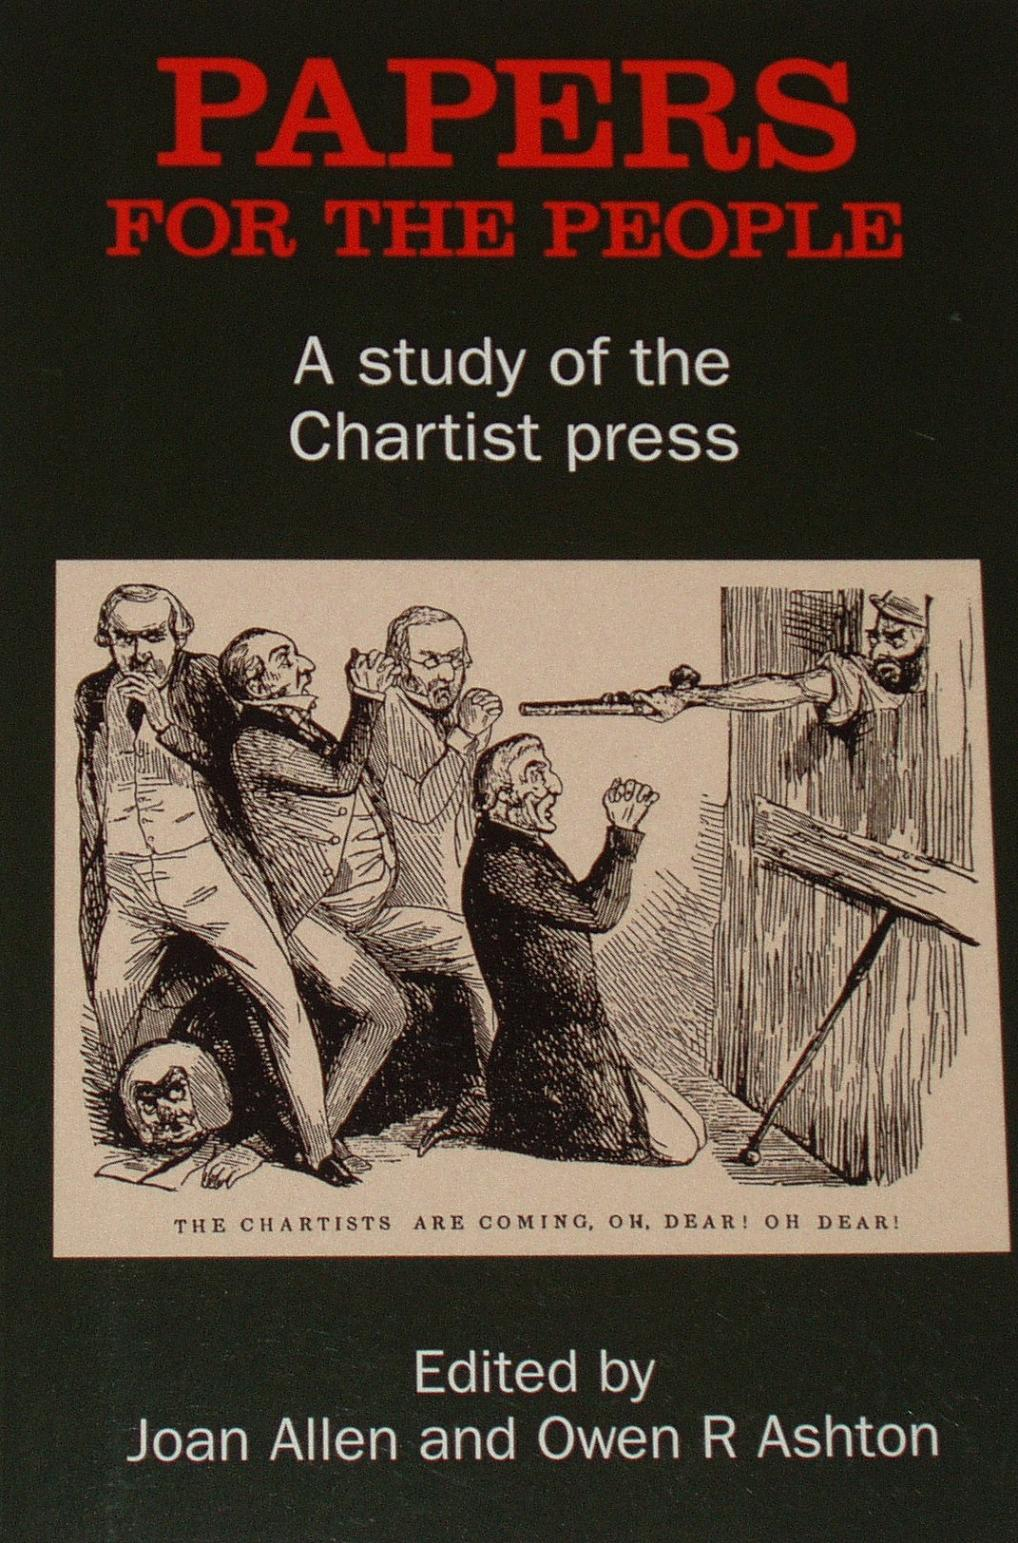 chartists and chartism essay View chartism research papers on academiaedu for free.